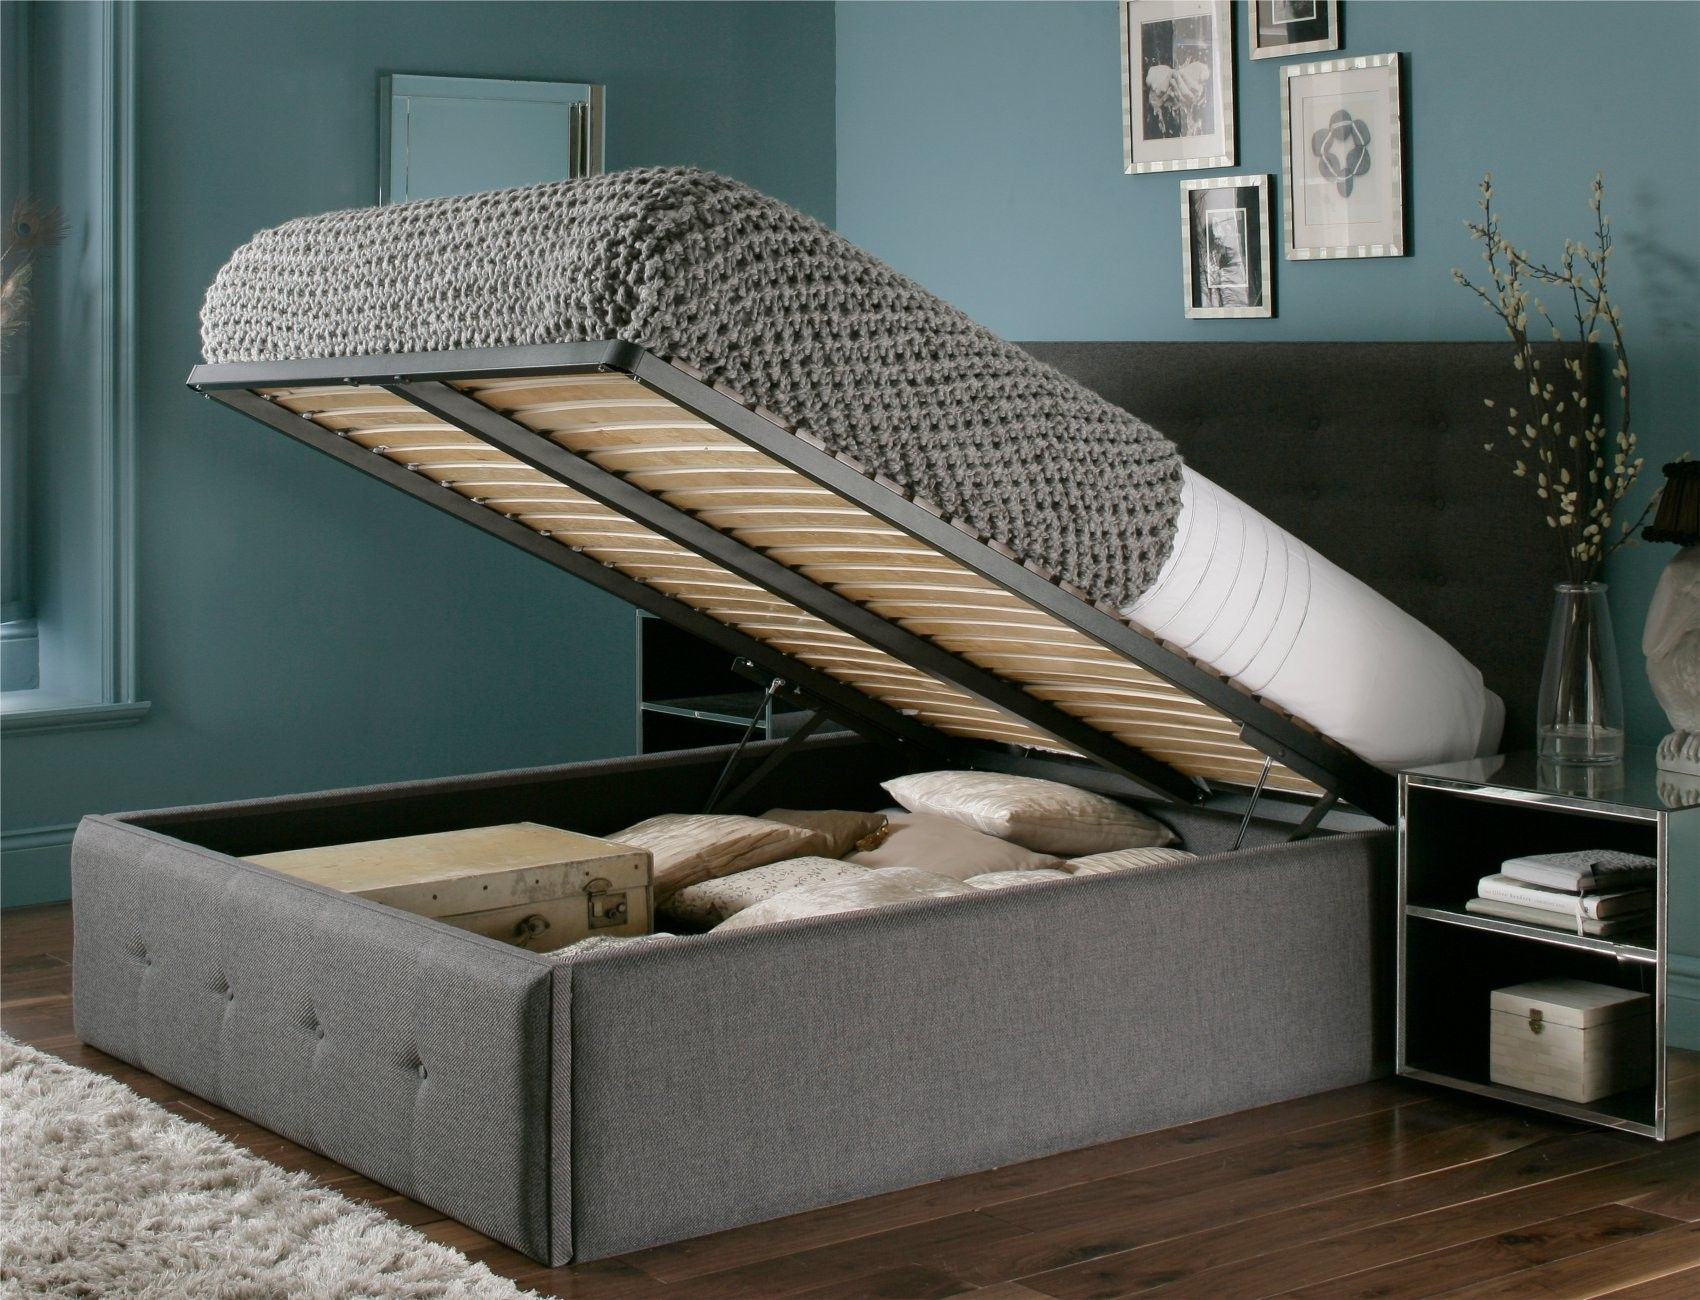 Reminds me of my rv bed home sweet home pinterest for Cama otomana